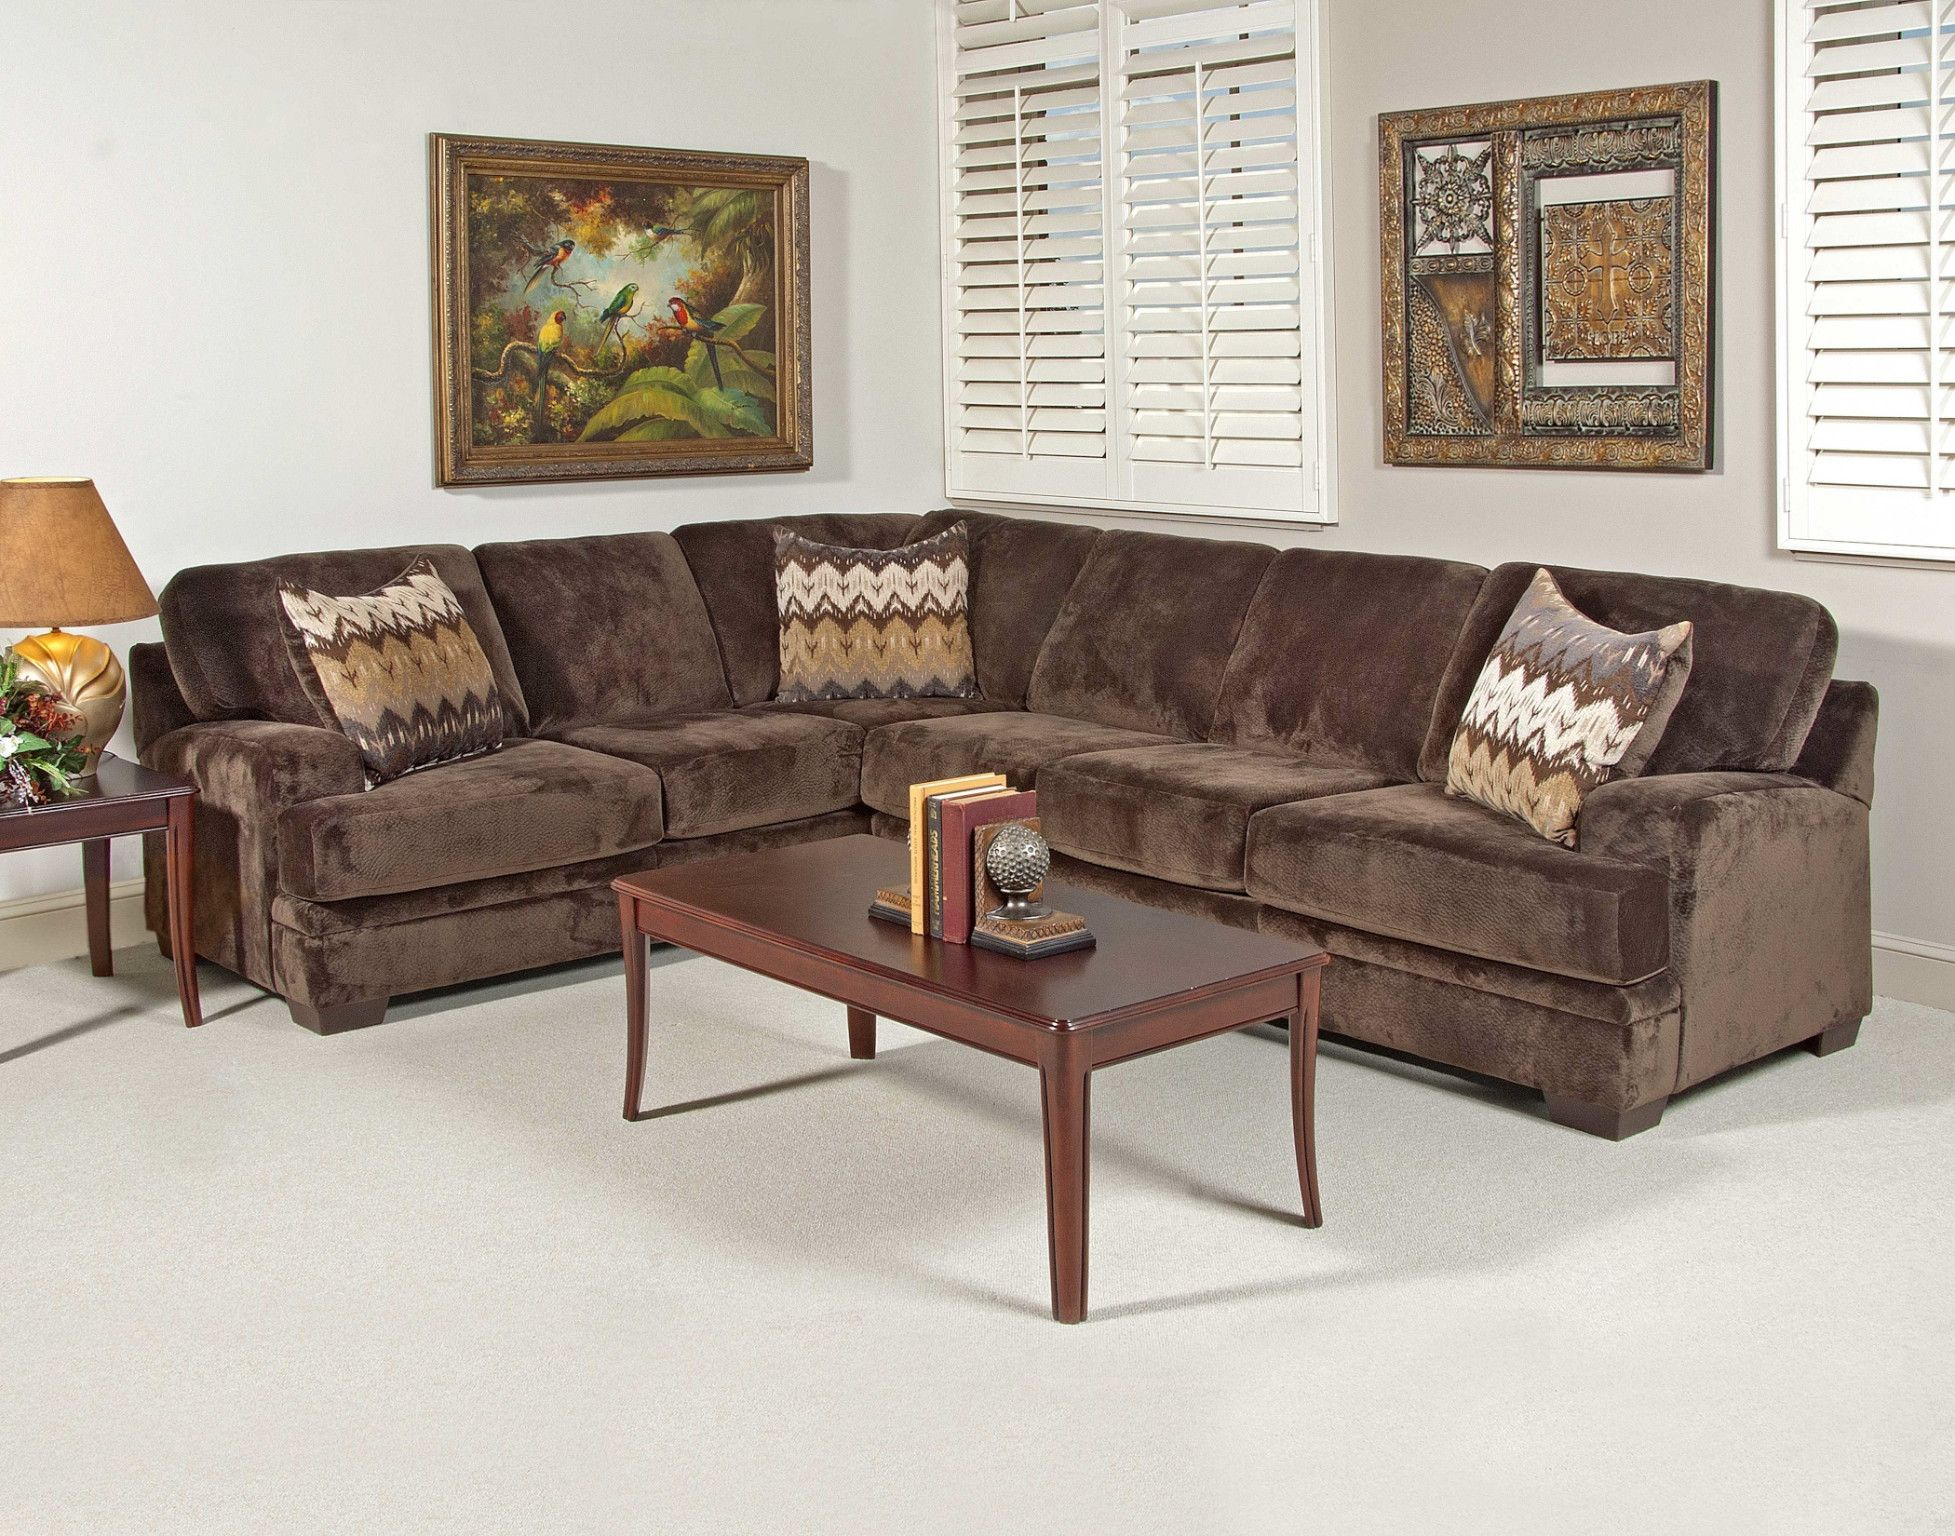 Wondrous Olympian Chocolate Sectional Sofa 799 00 Lf Corner Sofa 95 Ibusinesslaw Wood Chair Design Ideas Ibusinesslaworg